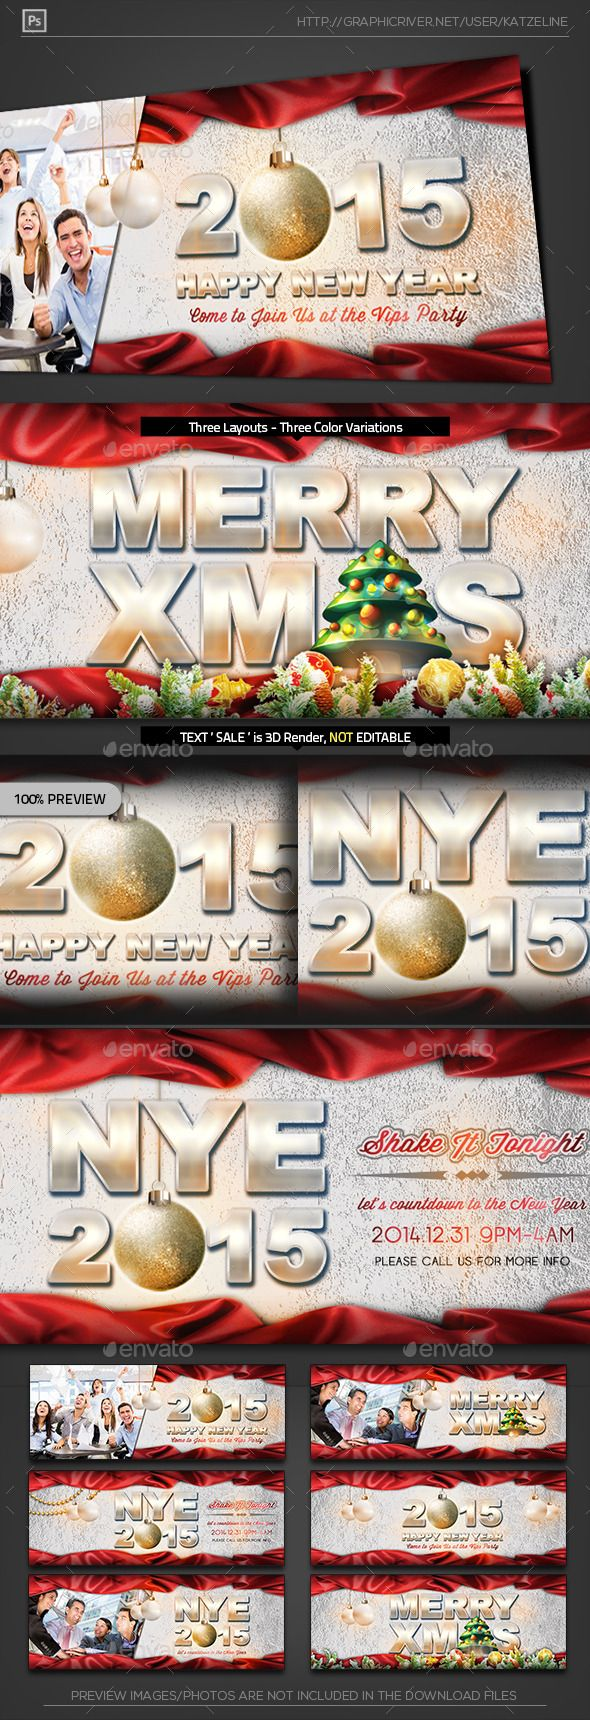 Christmas New Year Eve FB Timeline Cover | Fb timeline ...